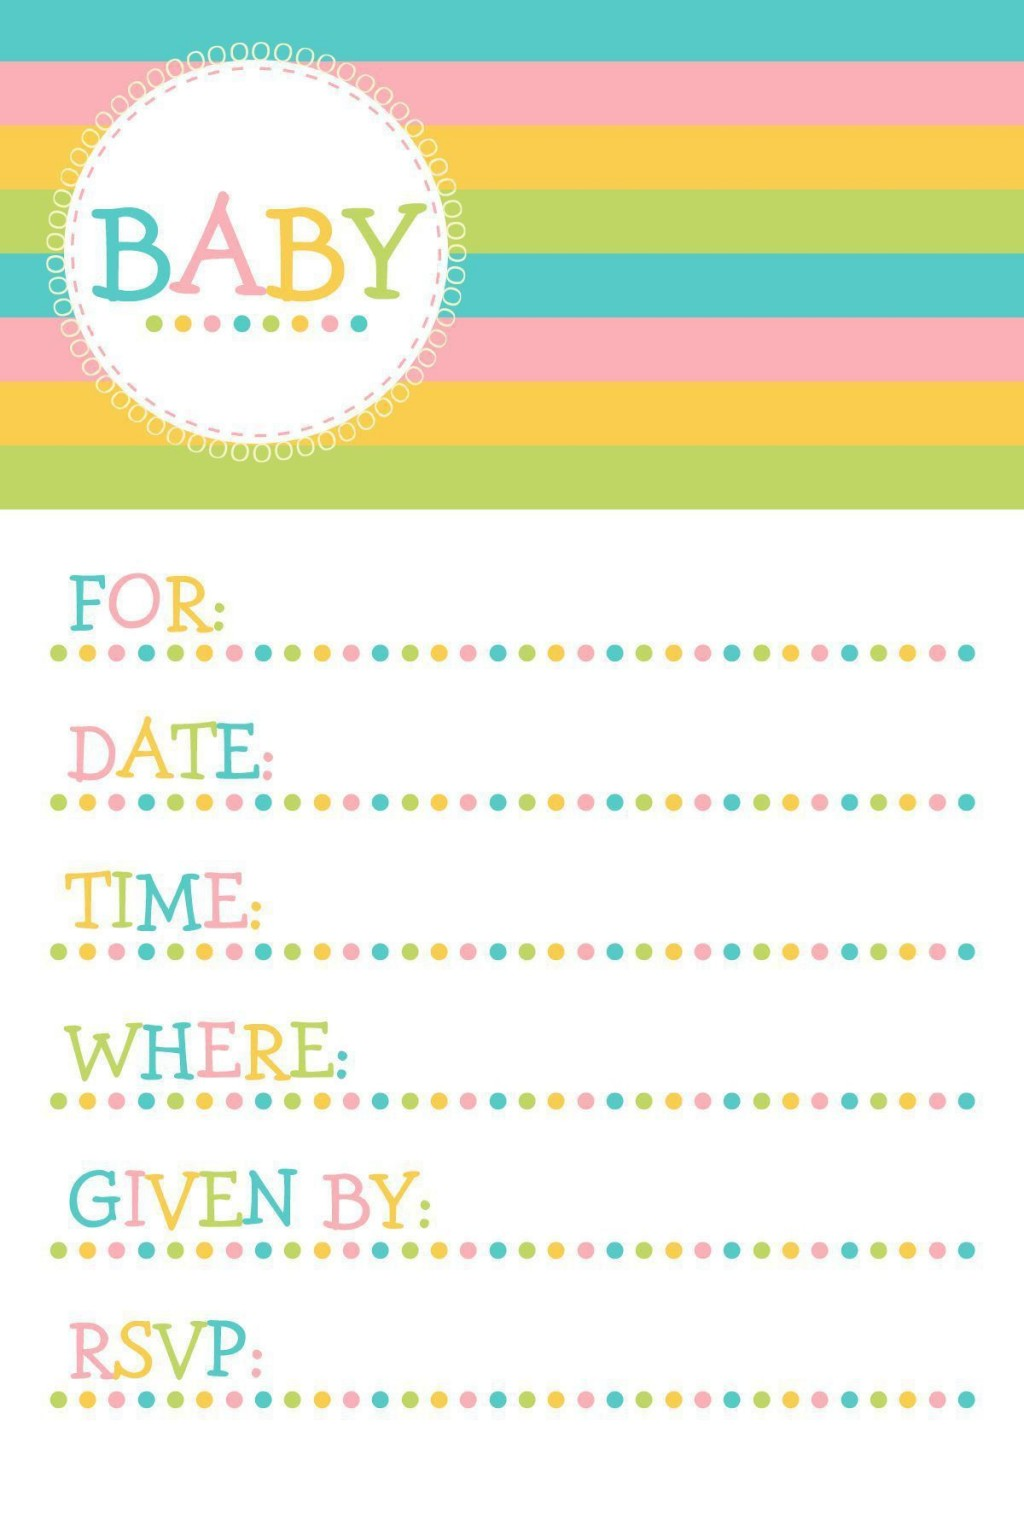 004 Magnificent Baby Shower Invitation Template Microsoft Word Photo  Free EditableLarge